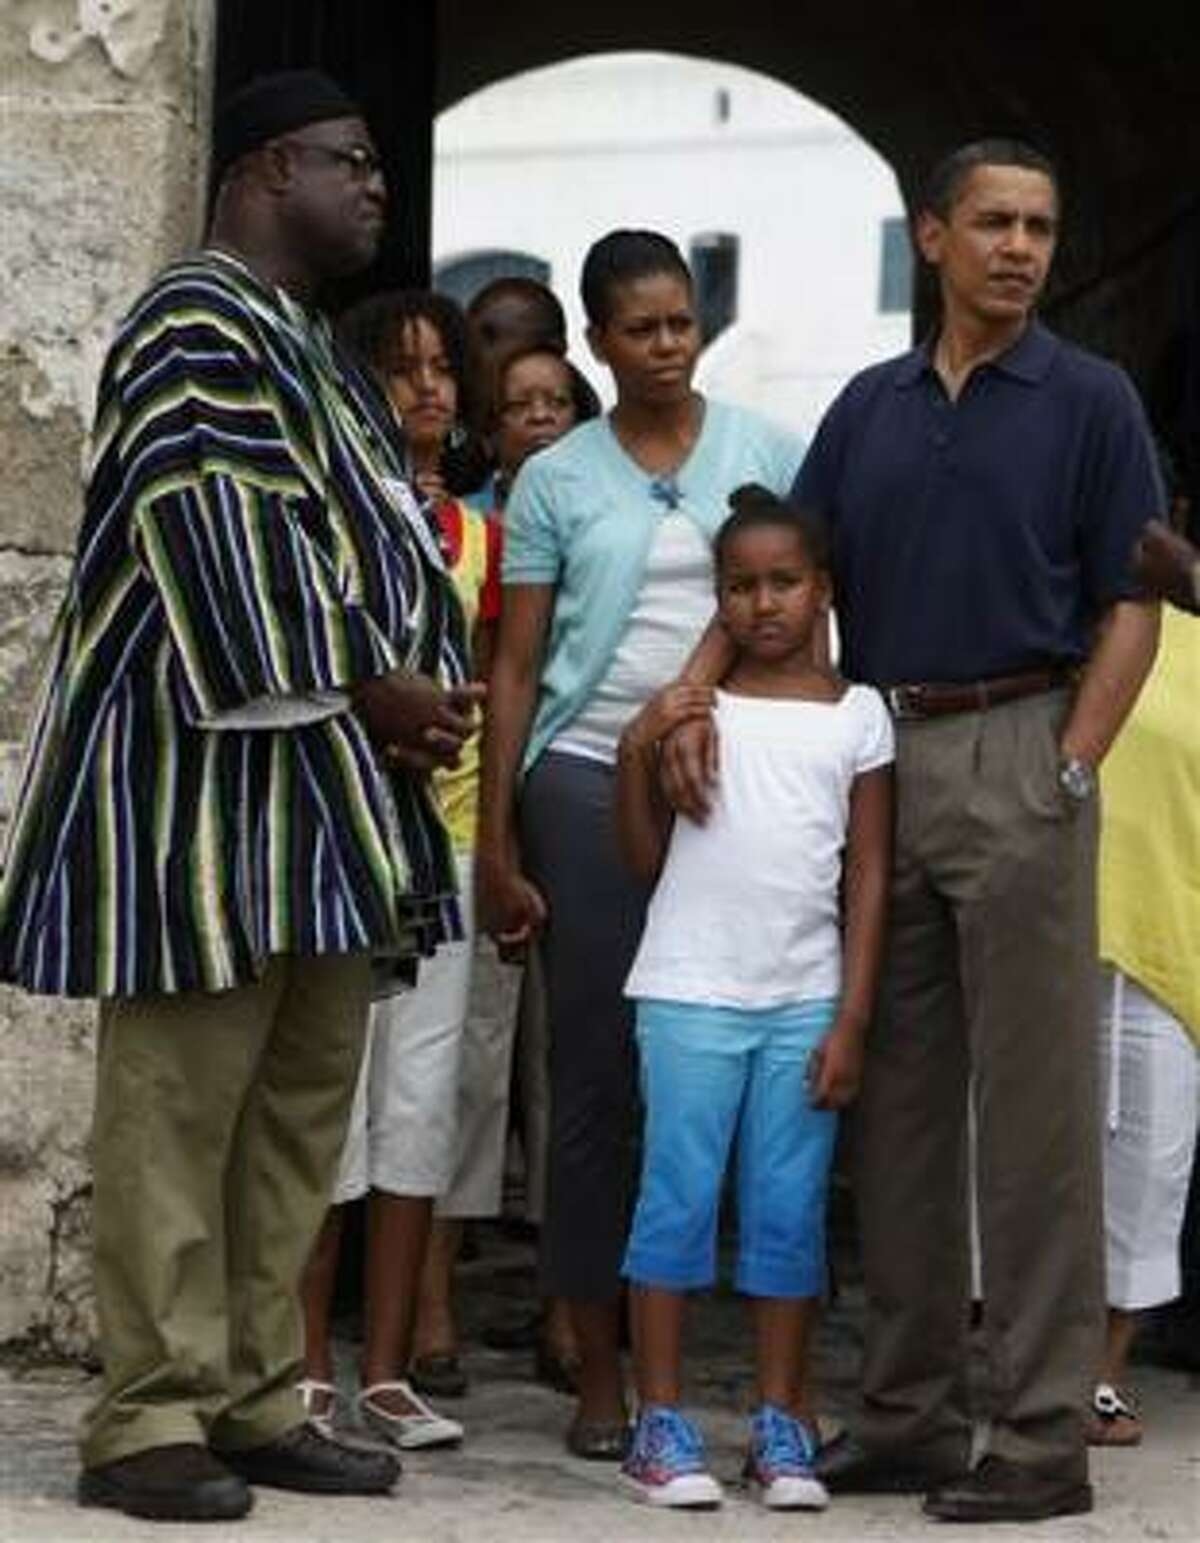 The president and his family tour Cape Coast Castle, a notorious slave port, in Cape Coast, Ghana, on July 11. The president was moved by the tour.